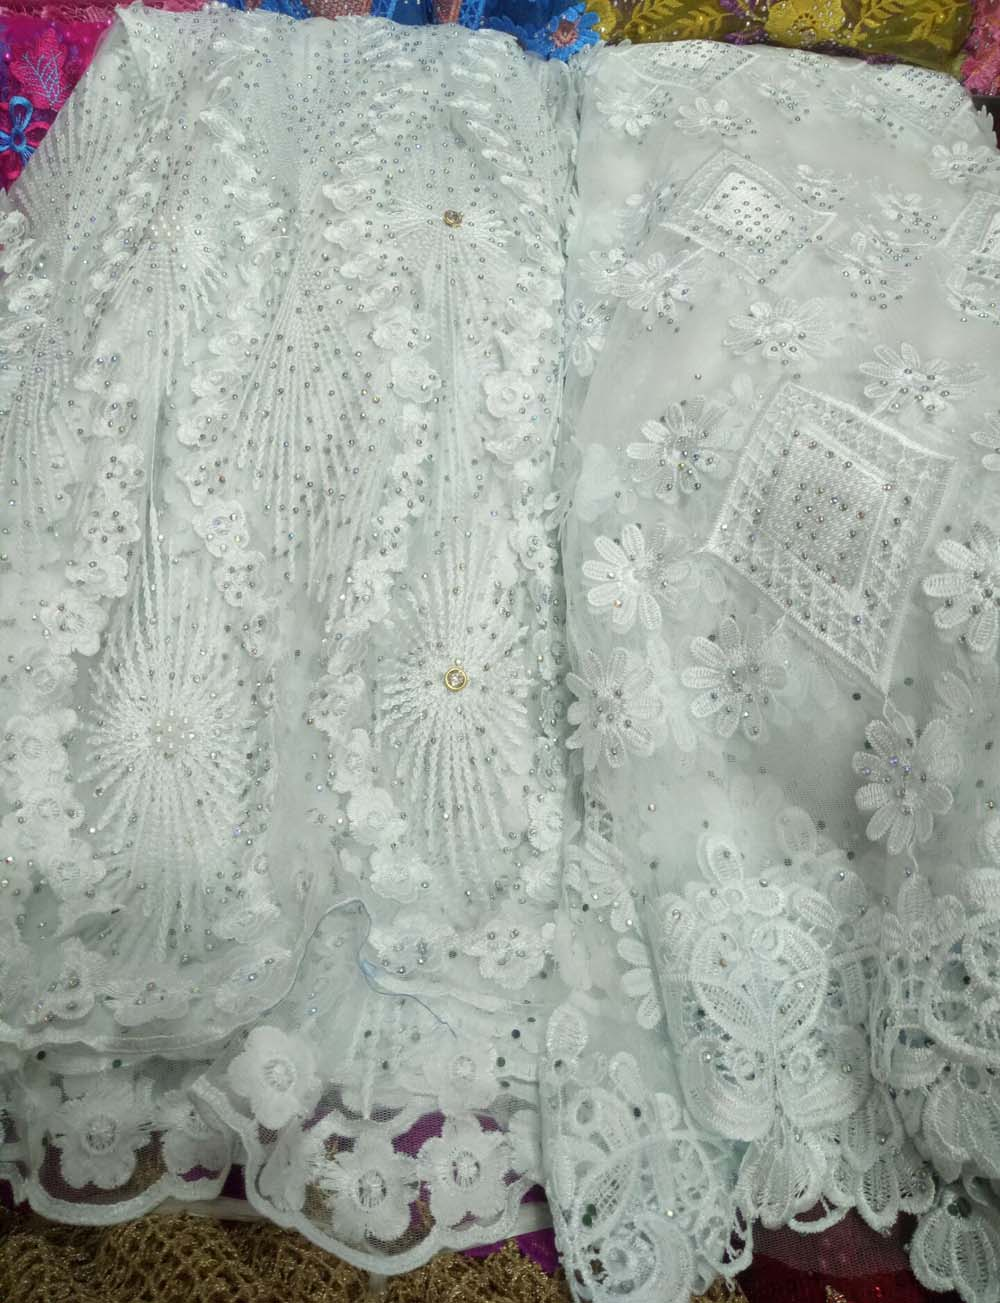 Women Fashion Clothes High Quality Wholesale Price Latest Net Dress Designs Tulle Lace Fabric white Color African Lace FabricWomen Fashion Clothes High Quality Wholesale Price Latest Net Dress Designs Tulle Lace Fabric white Color African Lace Fabric